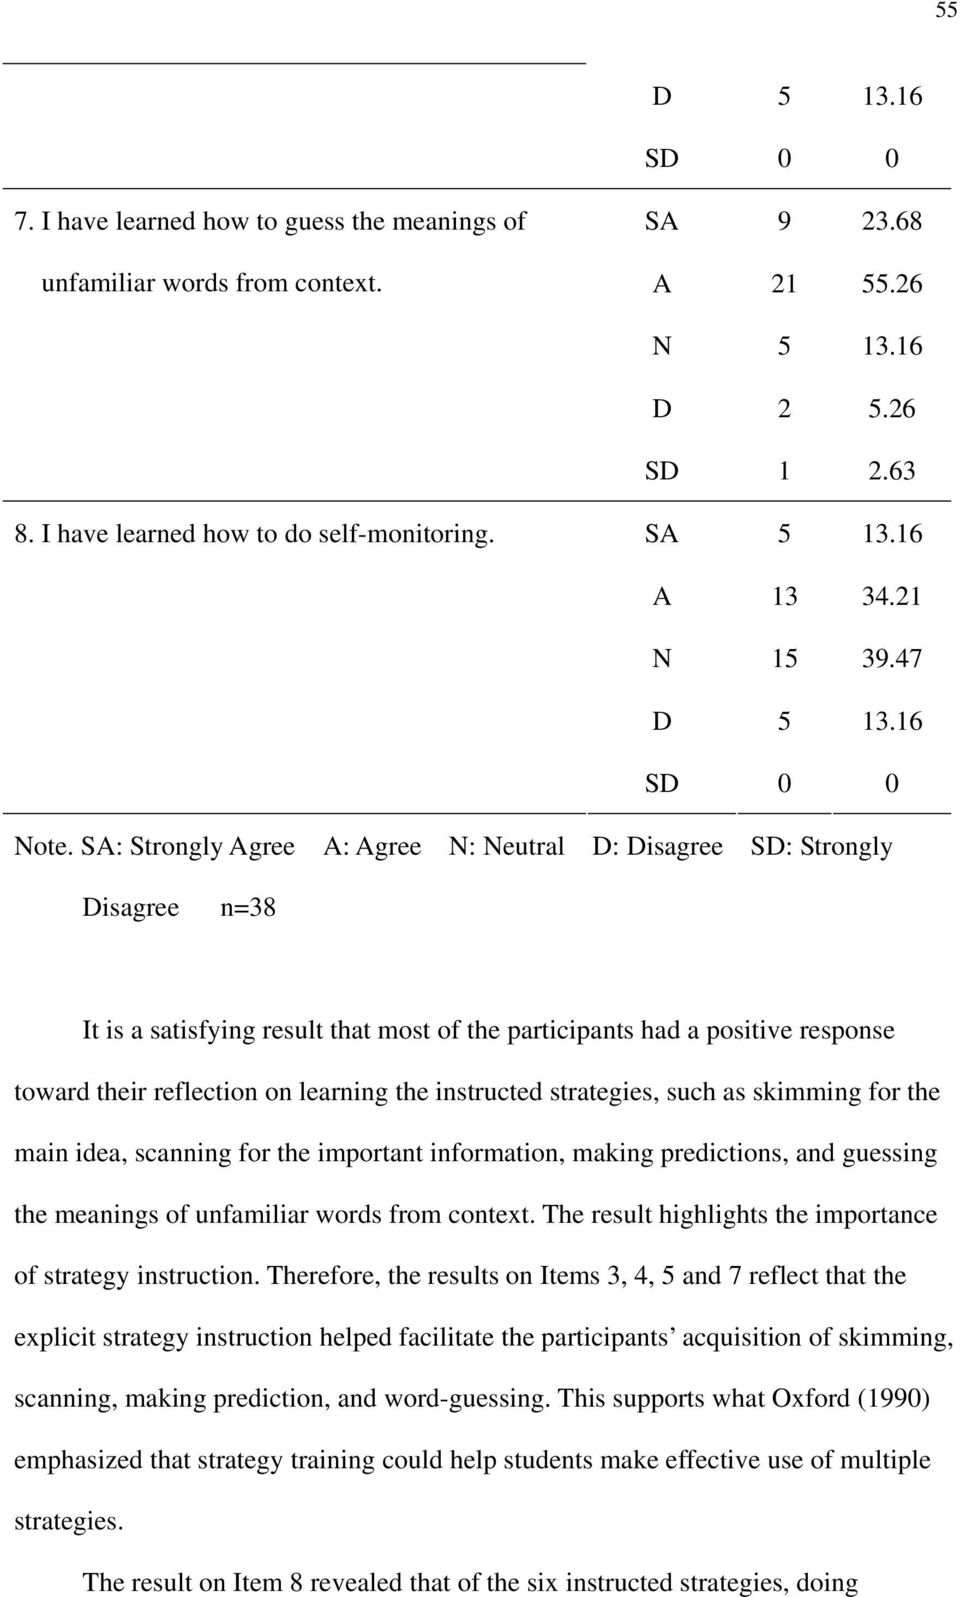 SA: Strongly Agree A: Agree N: Neutral D: Disagree : Strongly Disagree n=38 It is a satisfying result that most of the participants had a positive response toward their reflection on learning the